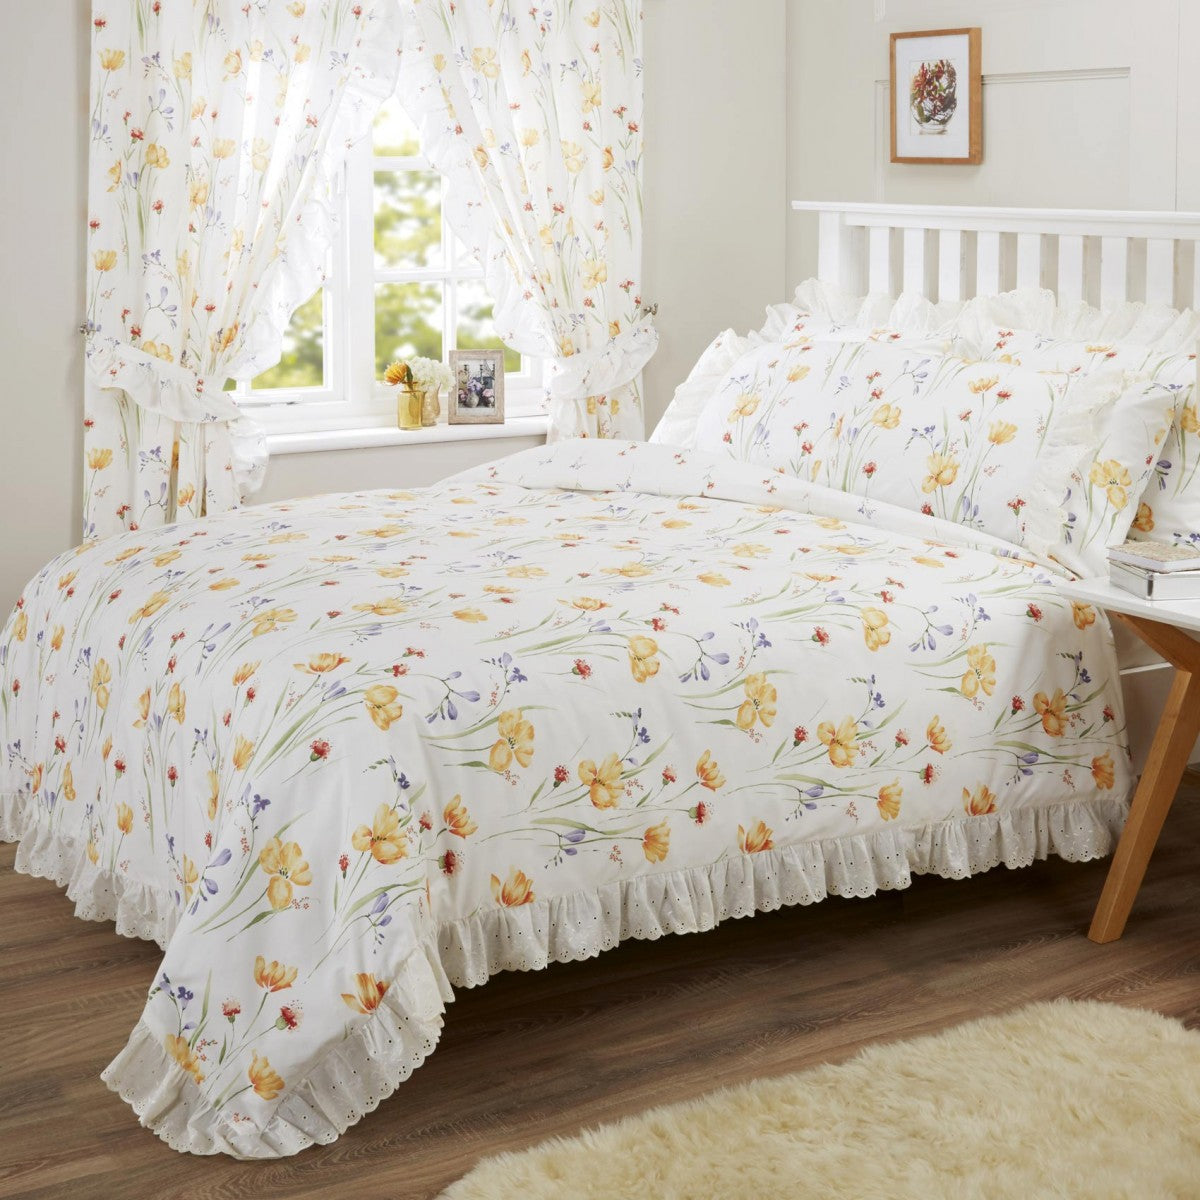 Vantona Duvet Covers